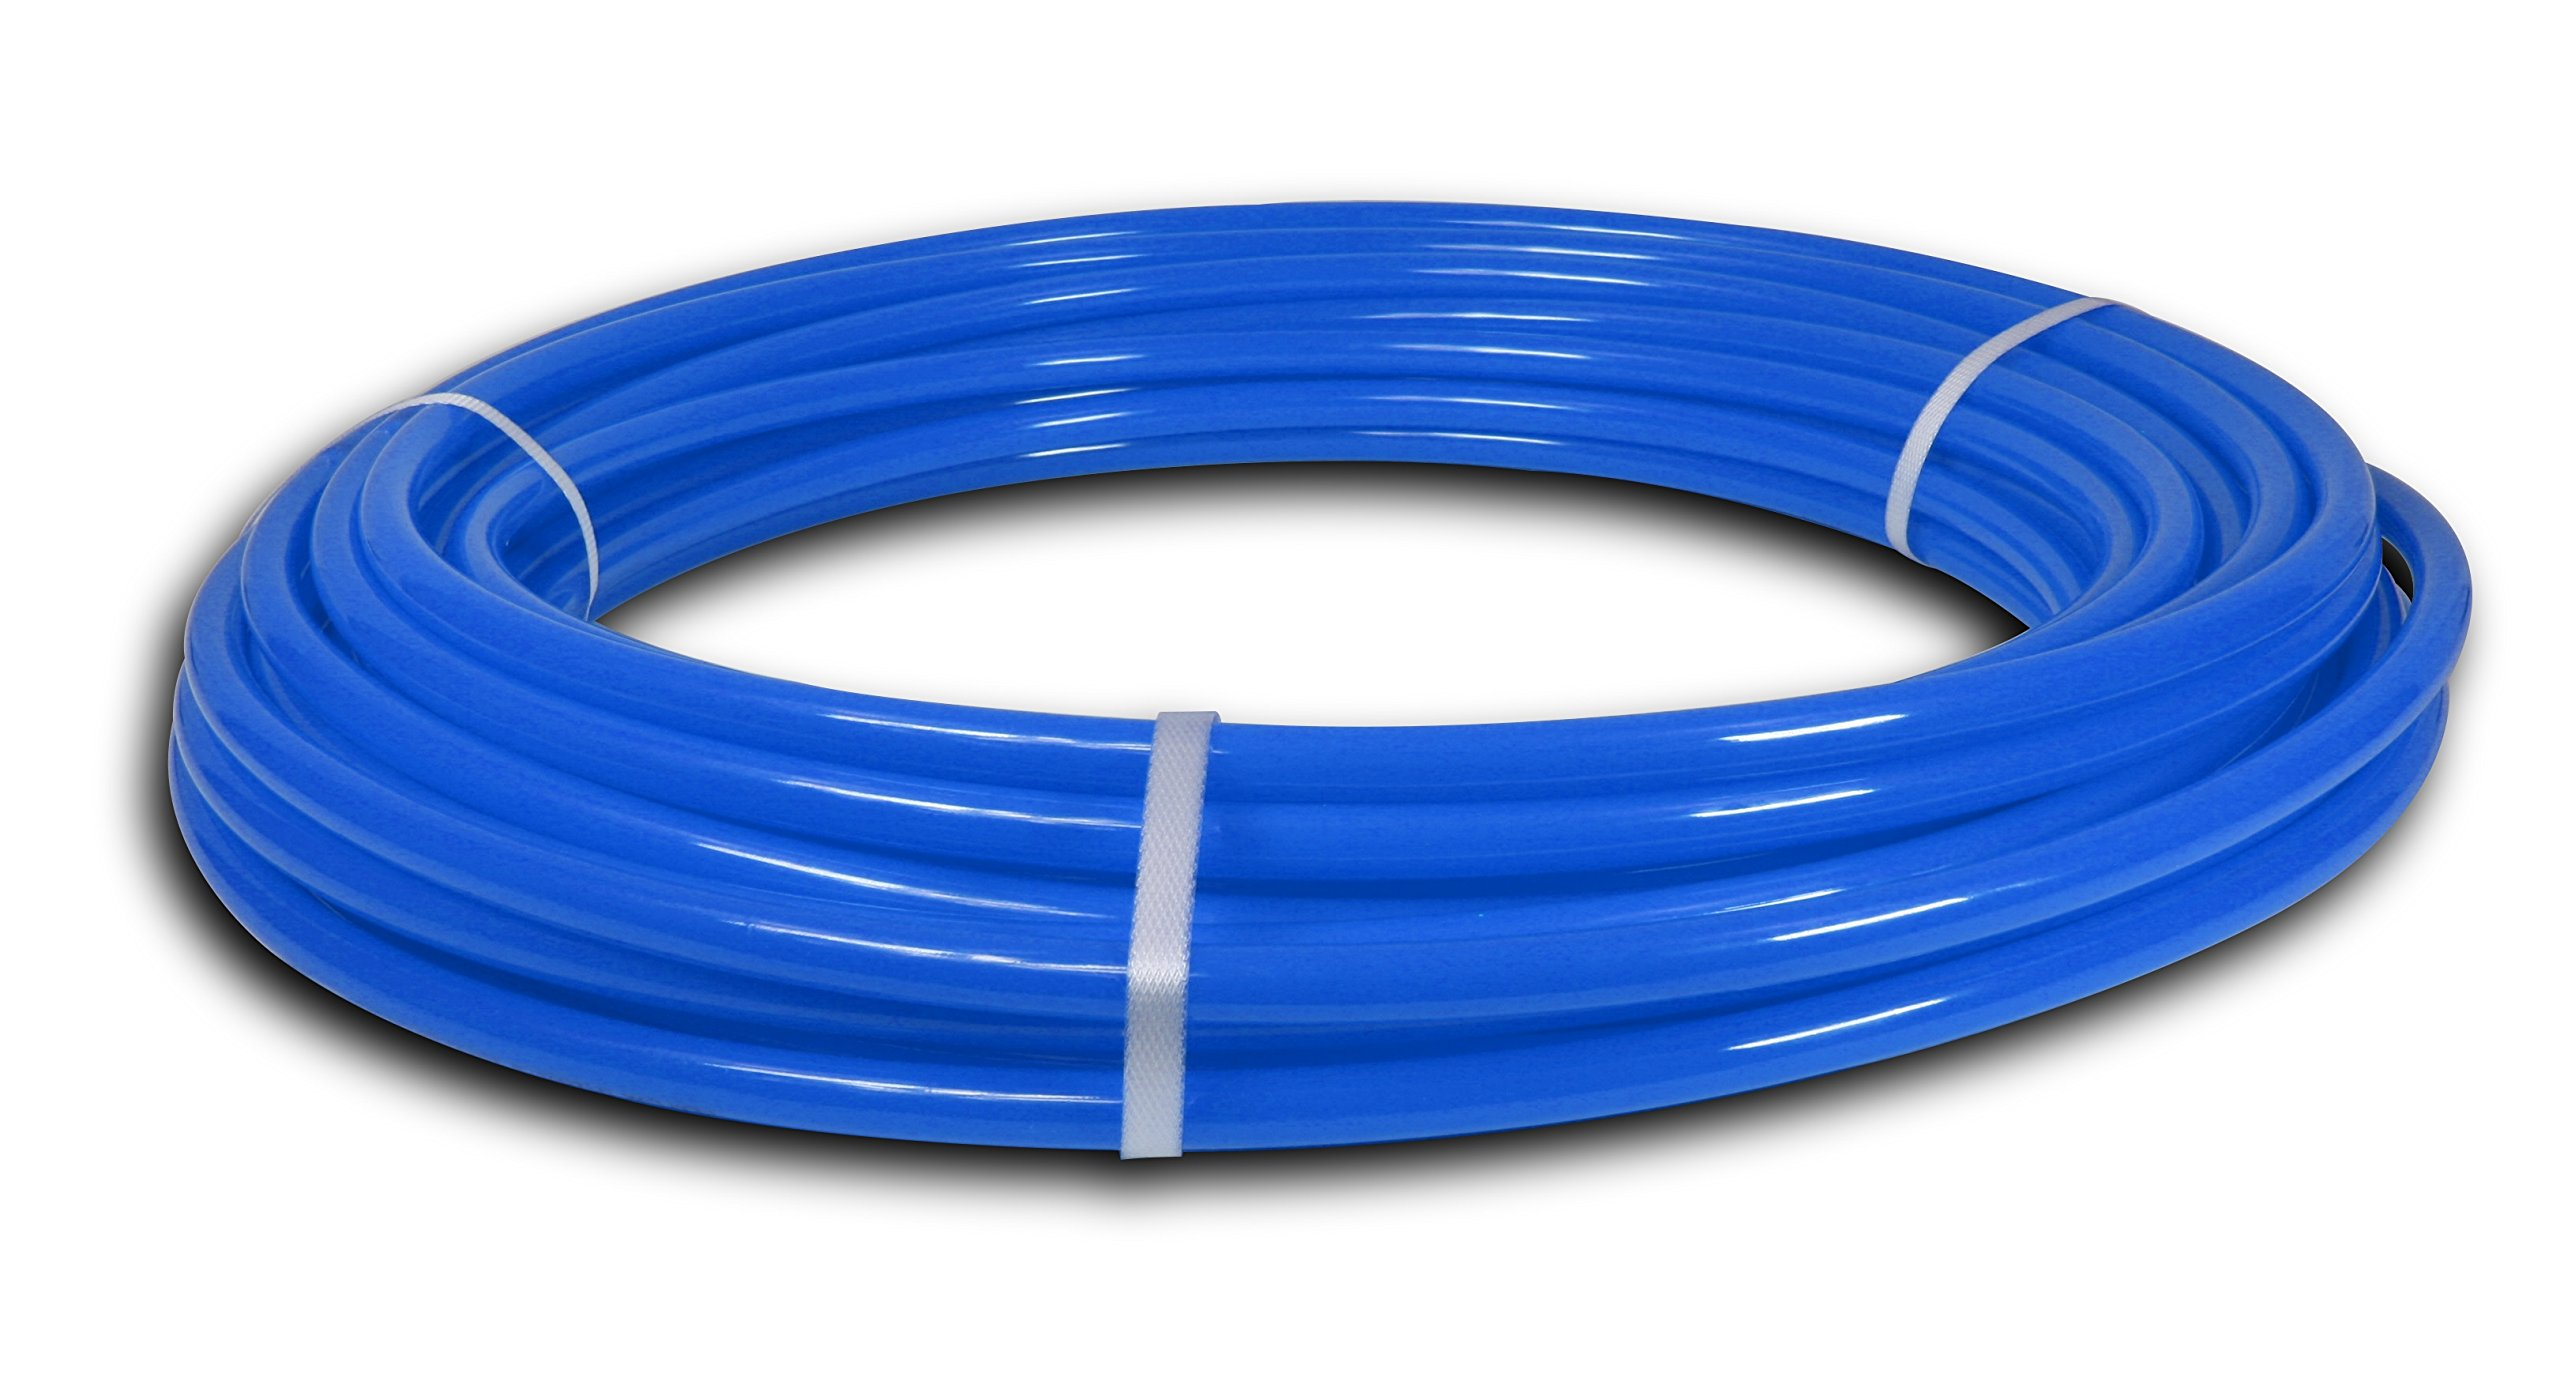 Pexflow PFW-B12100 PEX Potable Water Tubing Non-Barrier Pipe, 1/2 Inch x 100 Feet, Blue by PEXFLOW